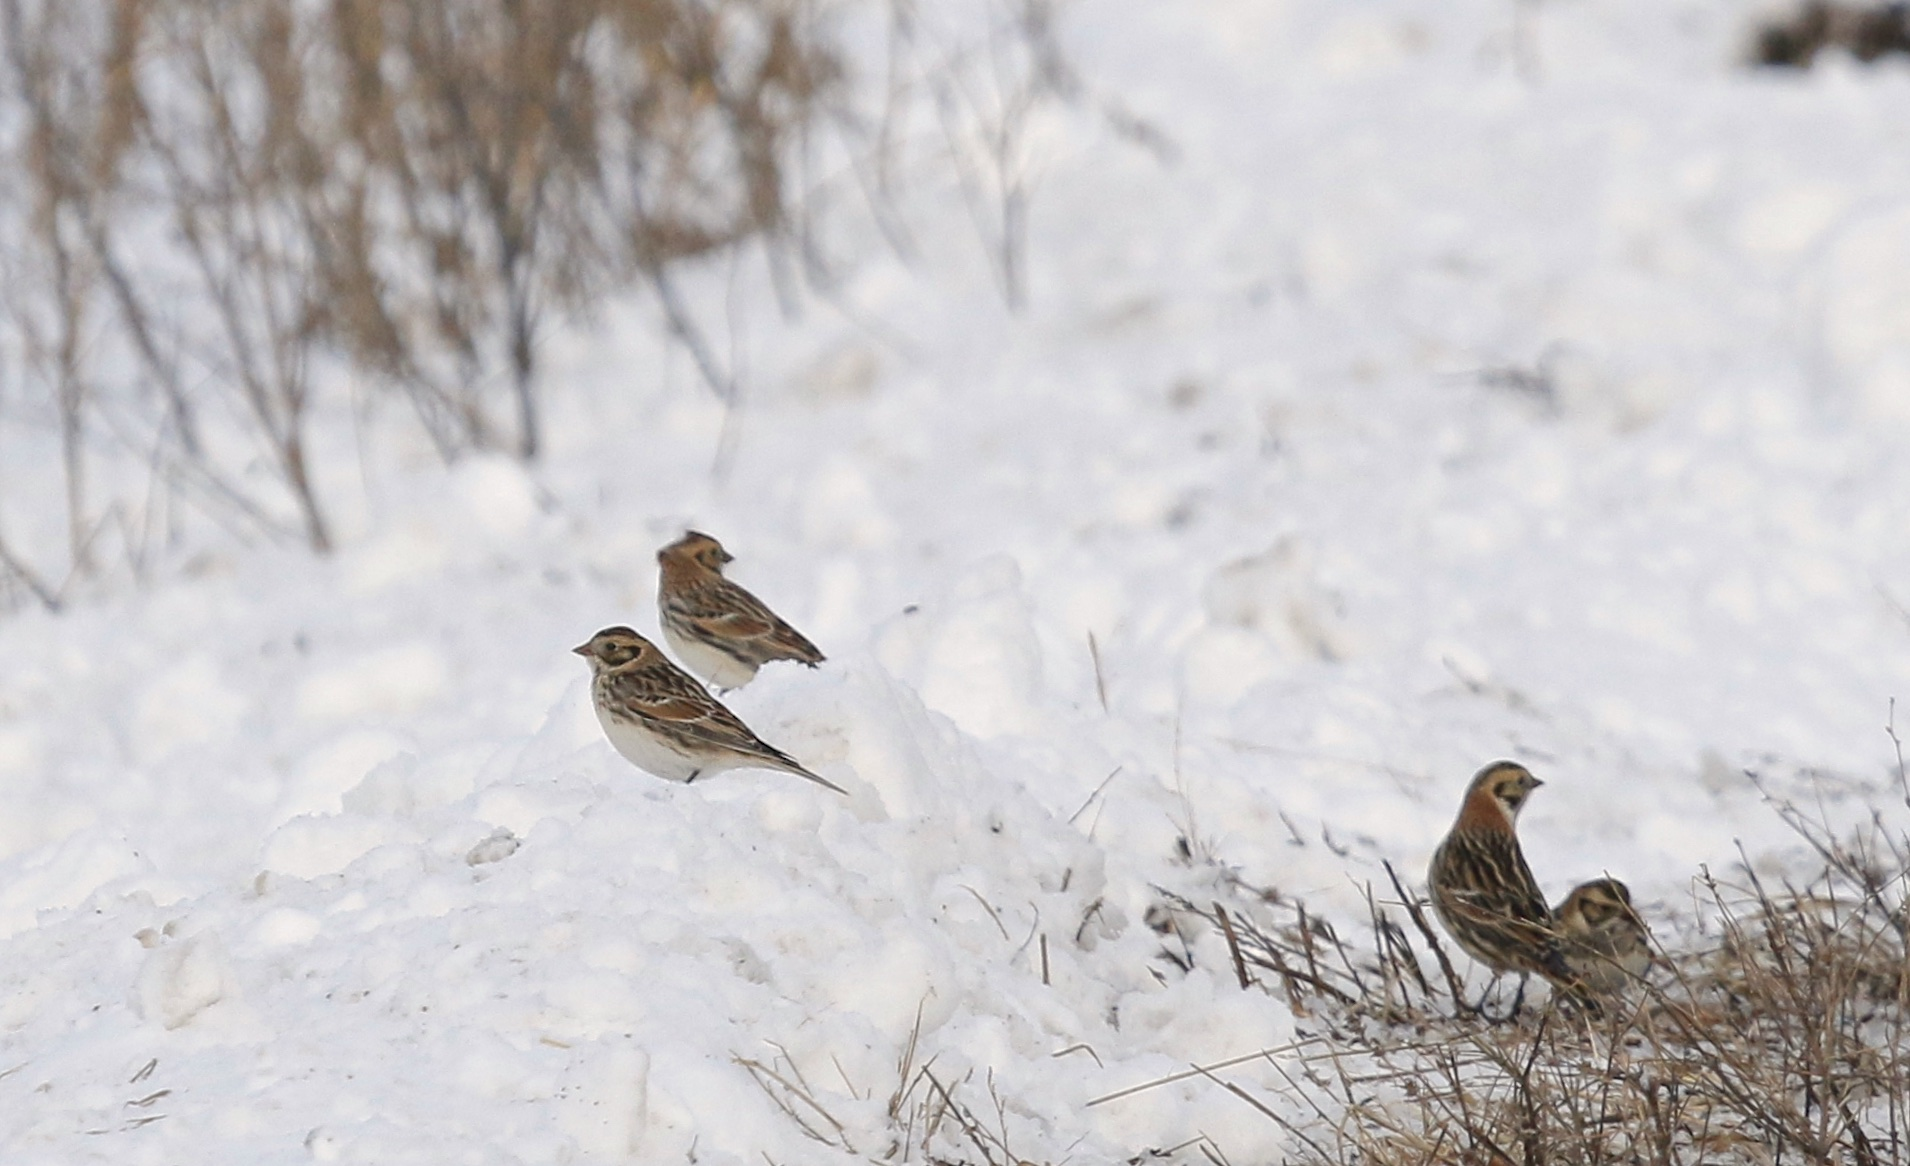 ~Four of the six Lapland Longspurs on Missionland Road today, 1/27/15.~